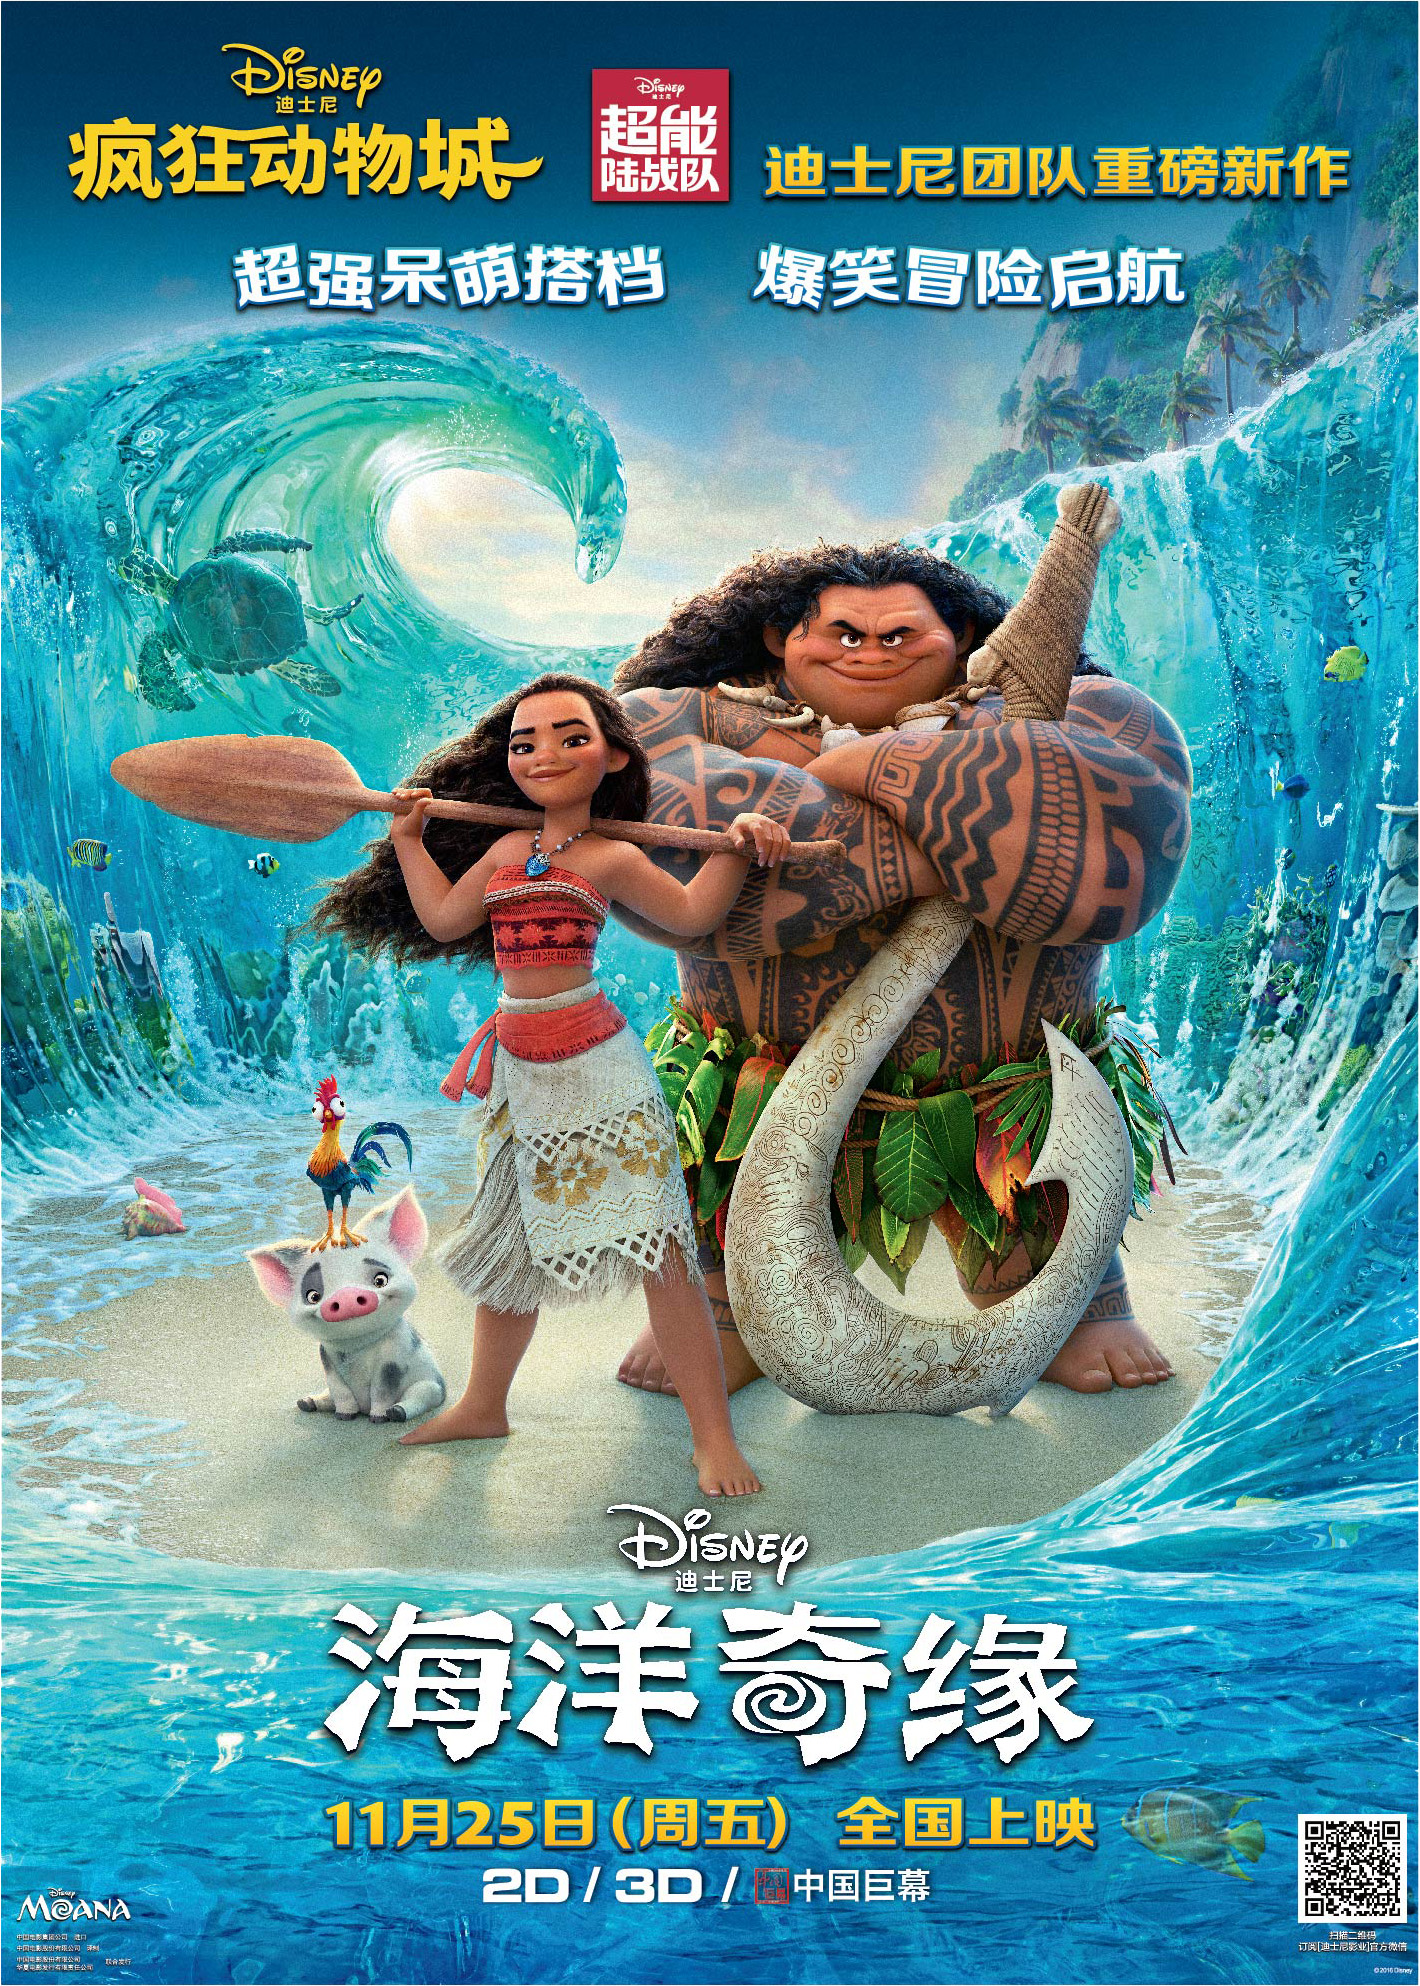 "《海洋奇缘/摩瓦娜 Moana》主题歌""How Far I'll Go""发布"